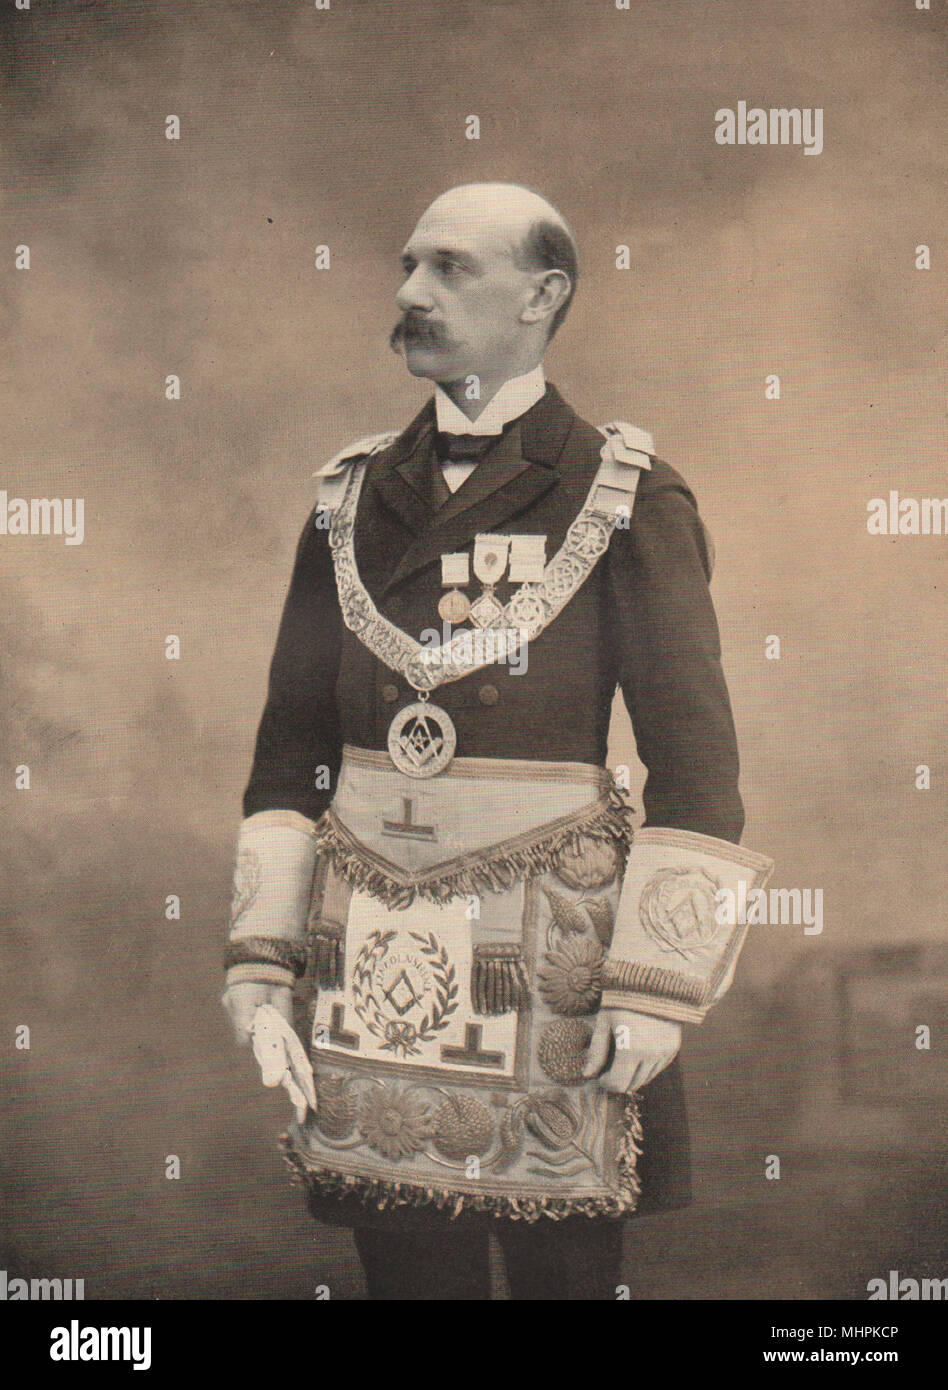 FREEMASONRY. The Earl of Yarborough Provincial Grand Master of Lincolnshire 1882 - Stock Image